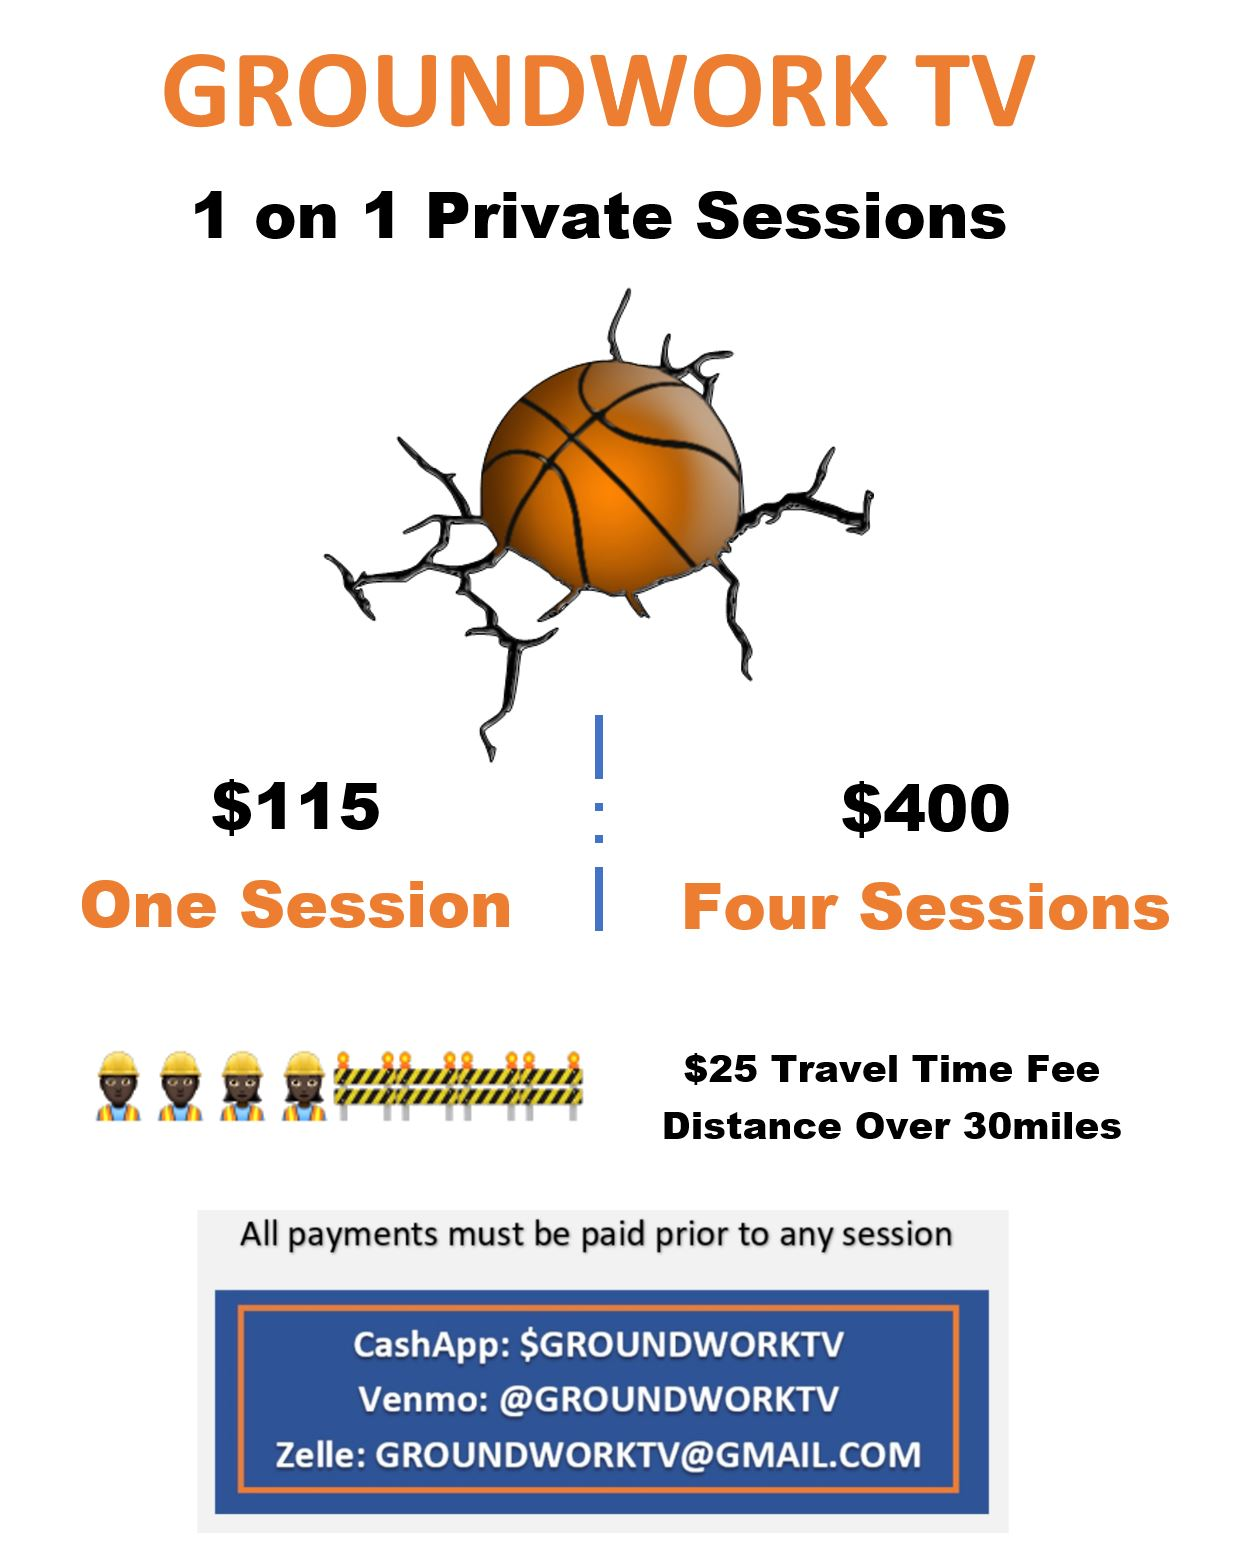 GroundWork TV on Echelon Local | NBA, Collegiate, Youth | Special Detail Basketball Training, Professional Basketball Fundamentals, Game Reads Situations, Skills Improvement programs